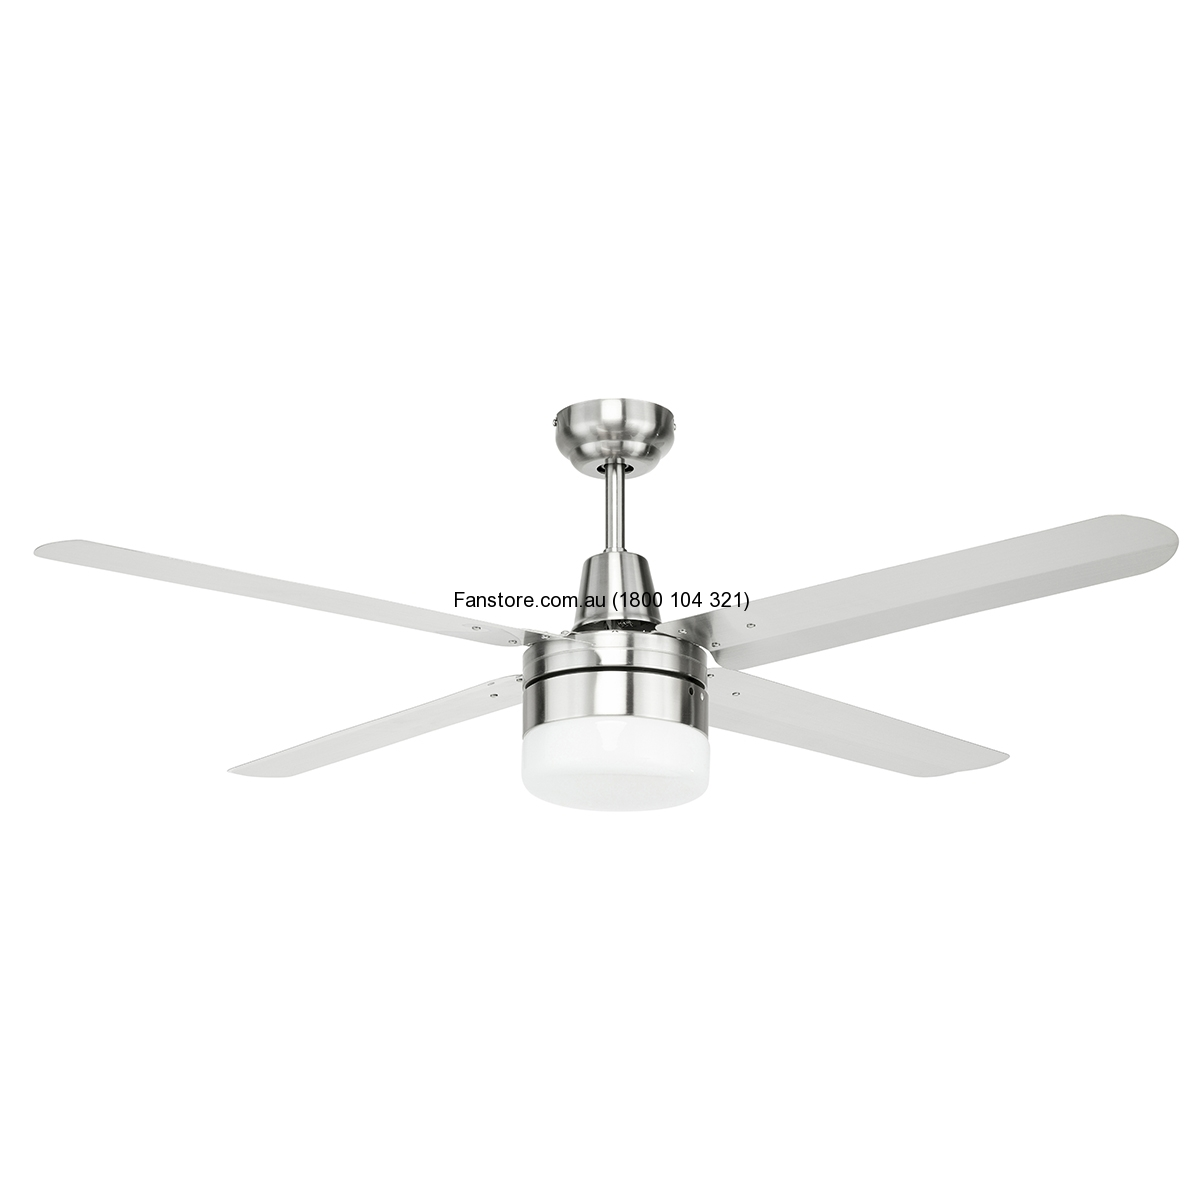 Atrium Ceiling Fan with light